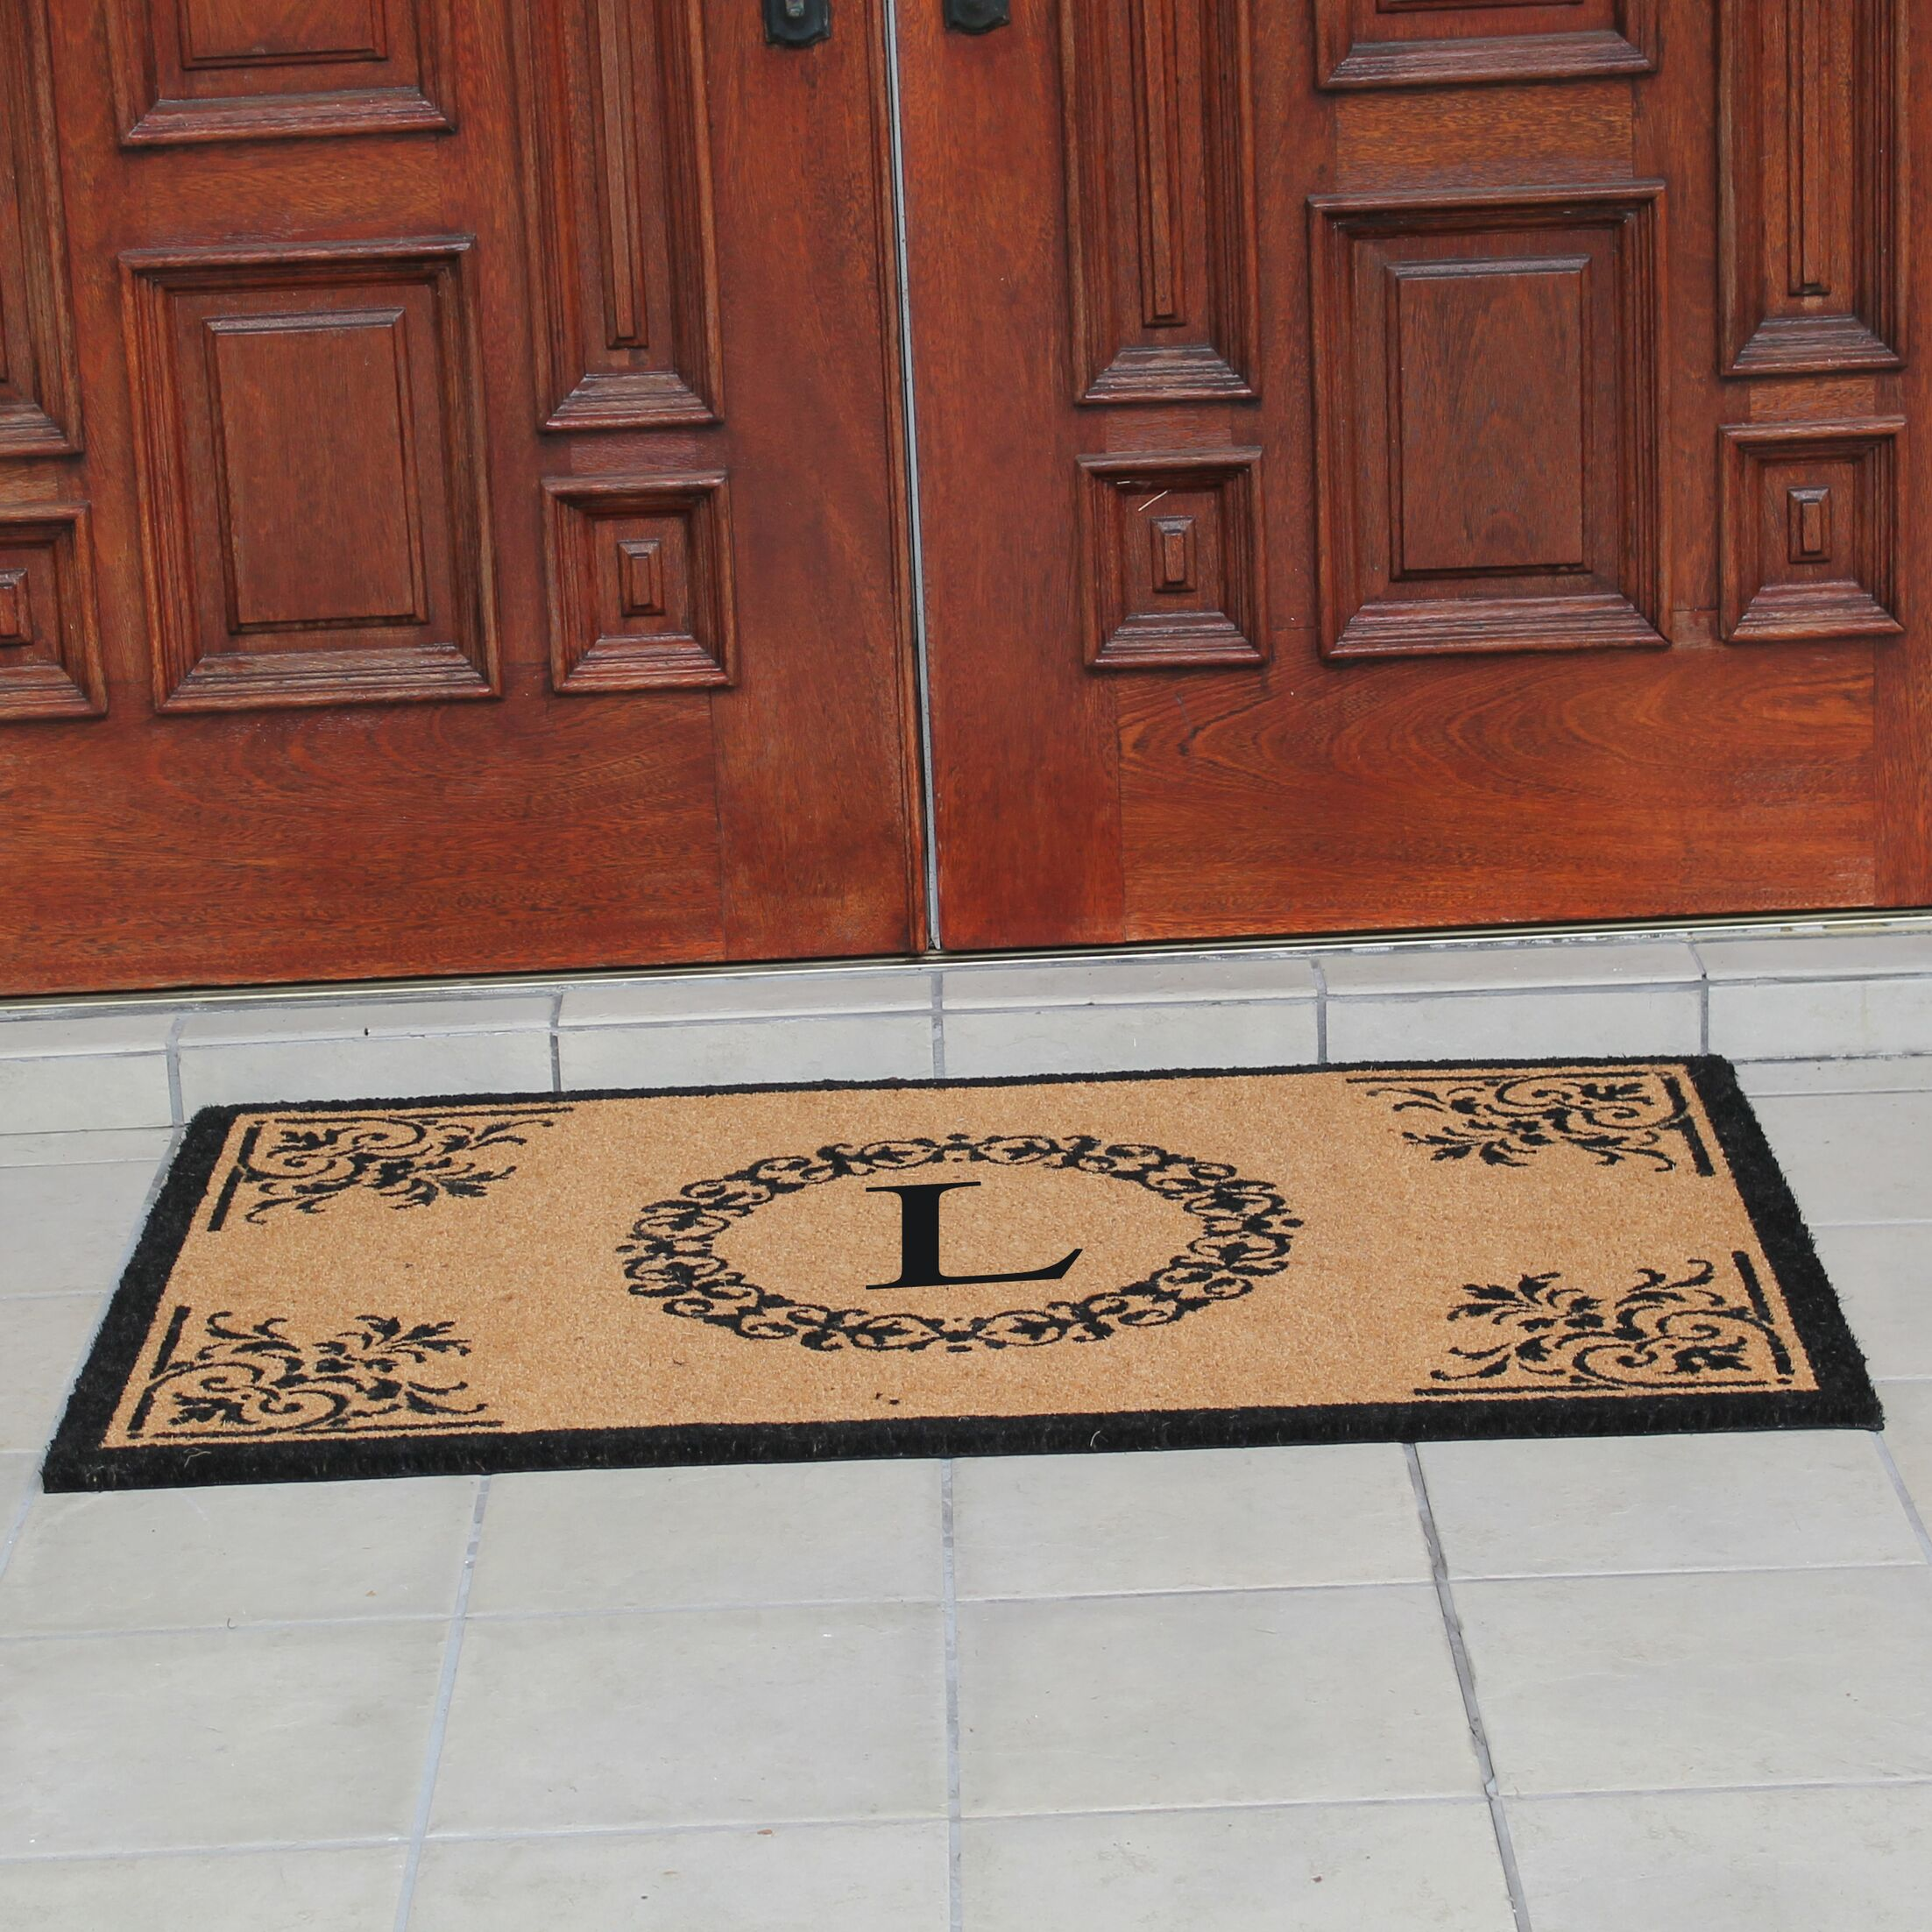 Hedvige Anti Shred Treated Non-Skid Monogrammed Entry Doormat Letter: L